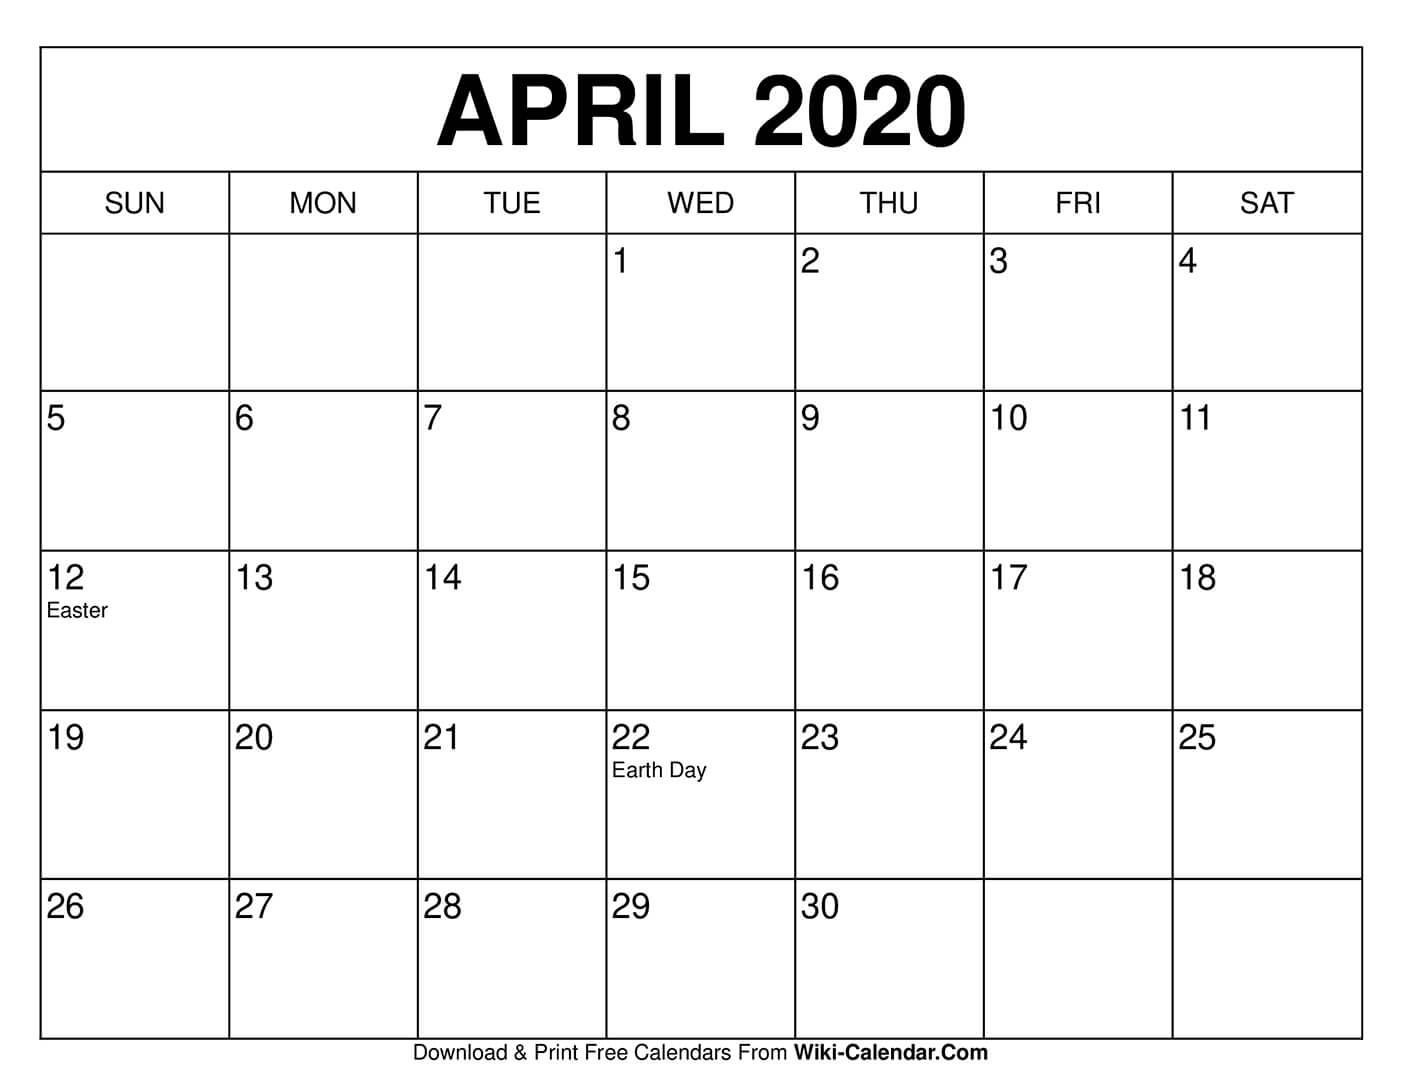 Free Printable April 2020 Calendars intended for Print Free Calendars Without Downloading 2020